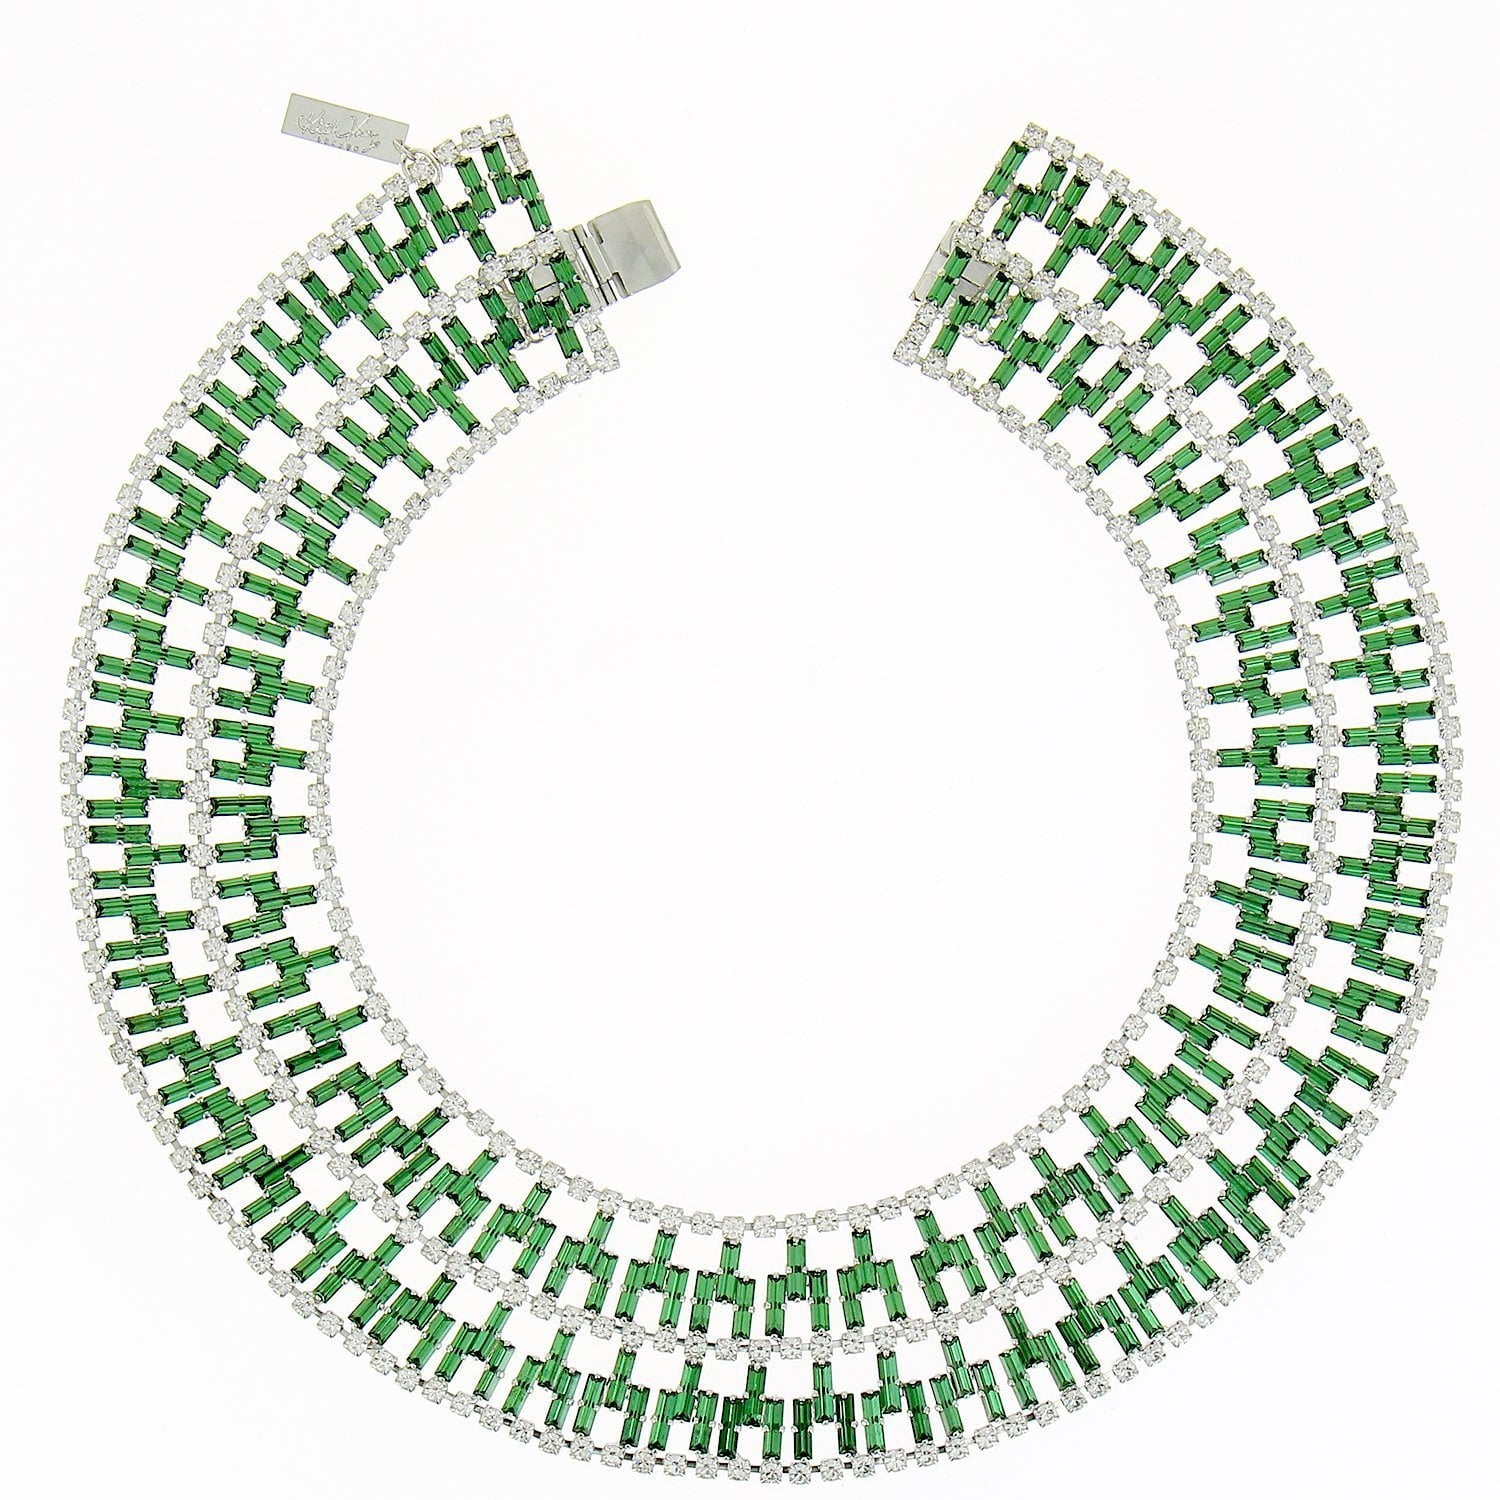 Nefertiti Emerald Necklace